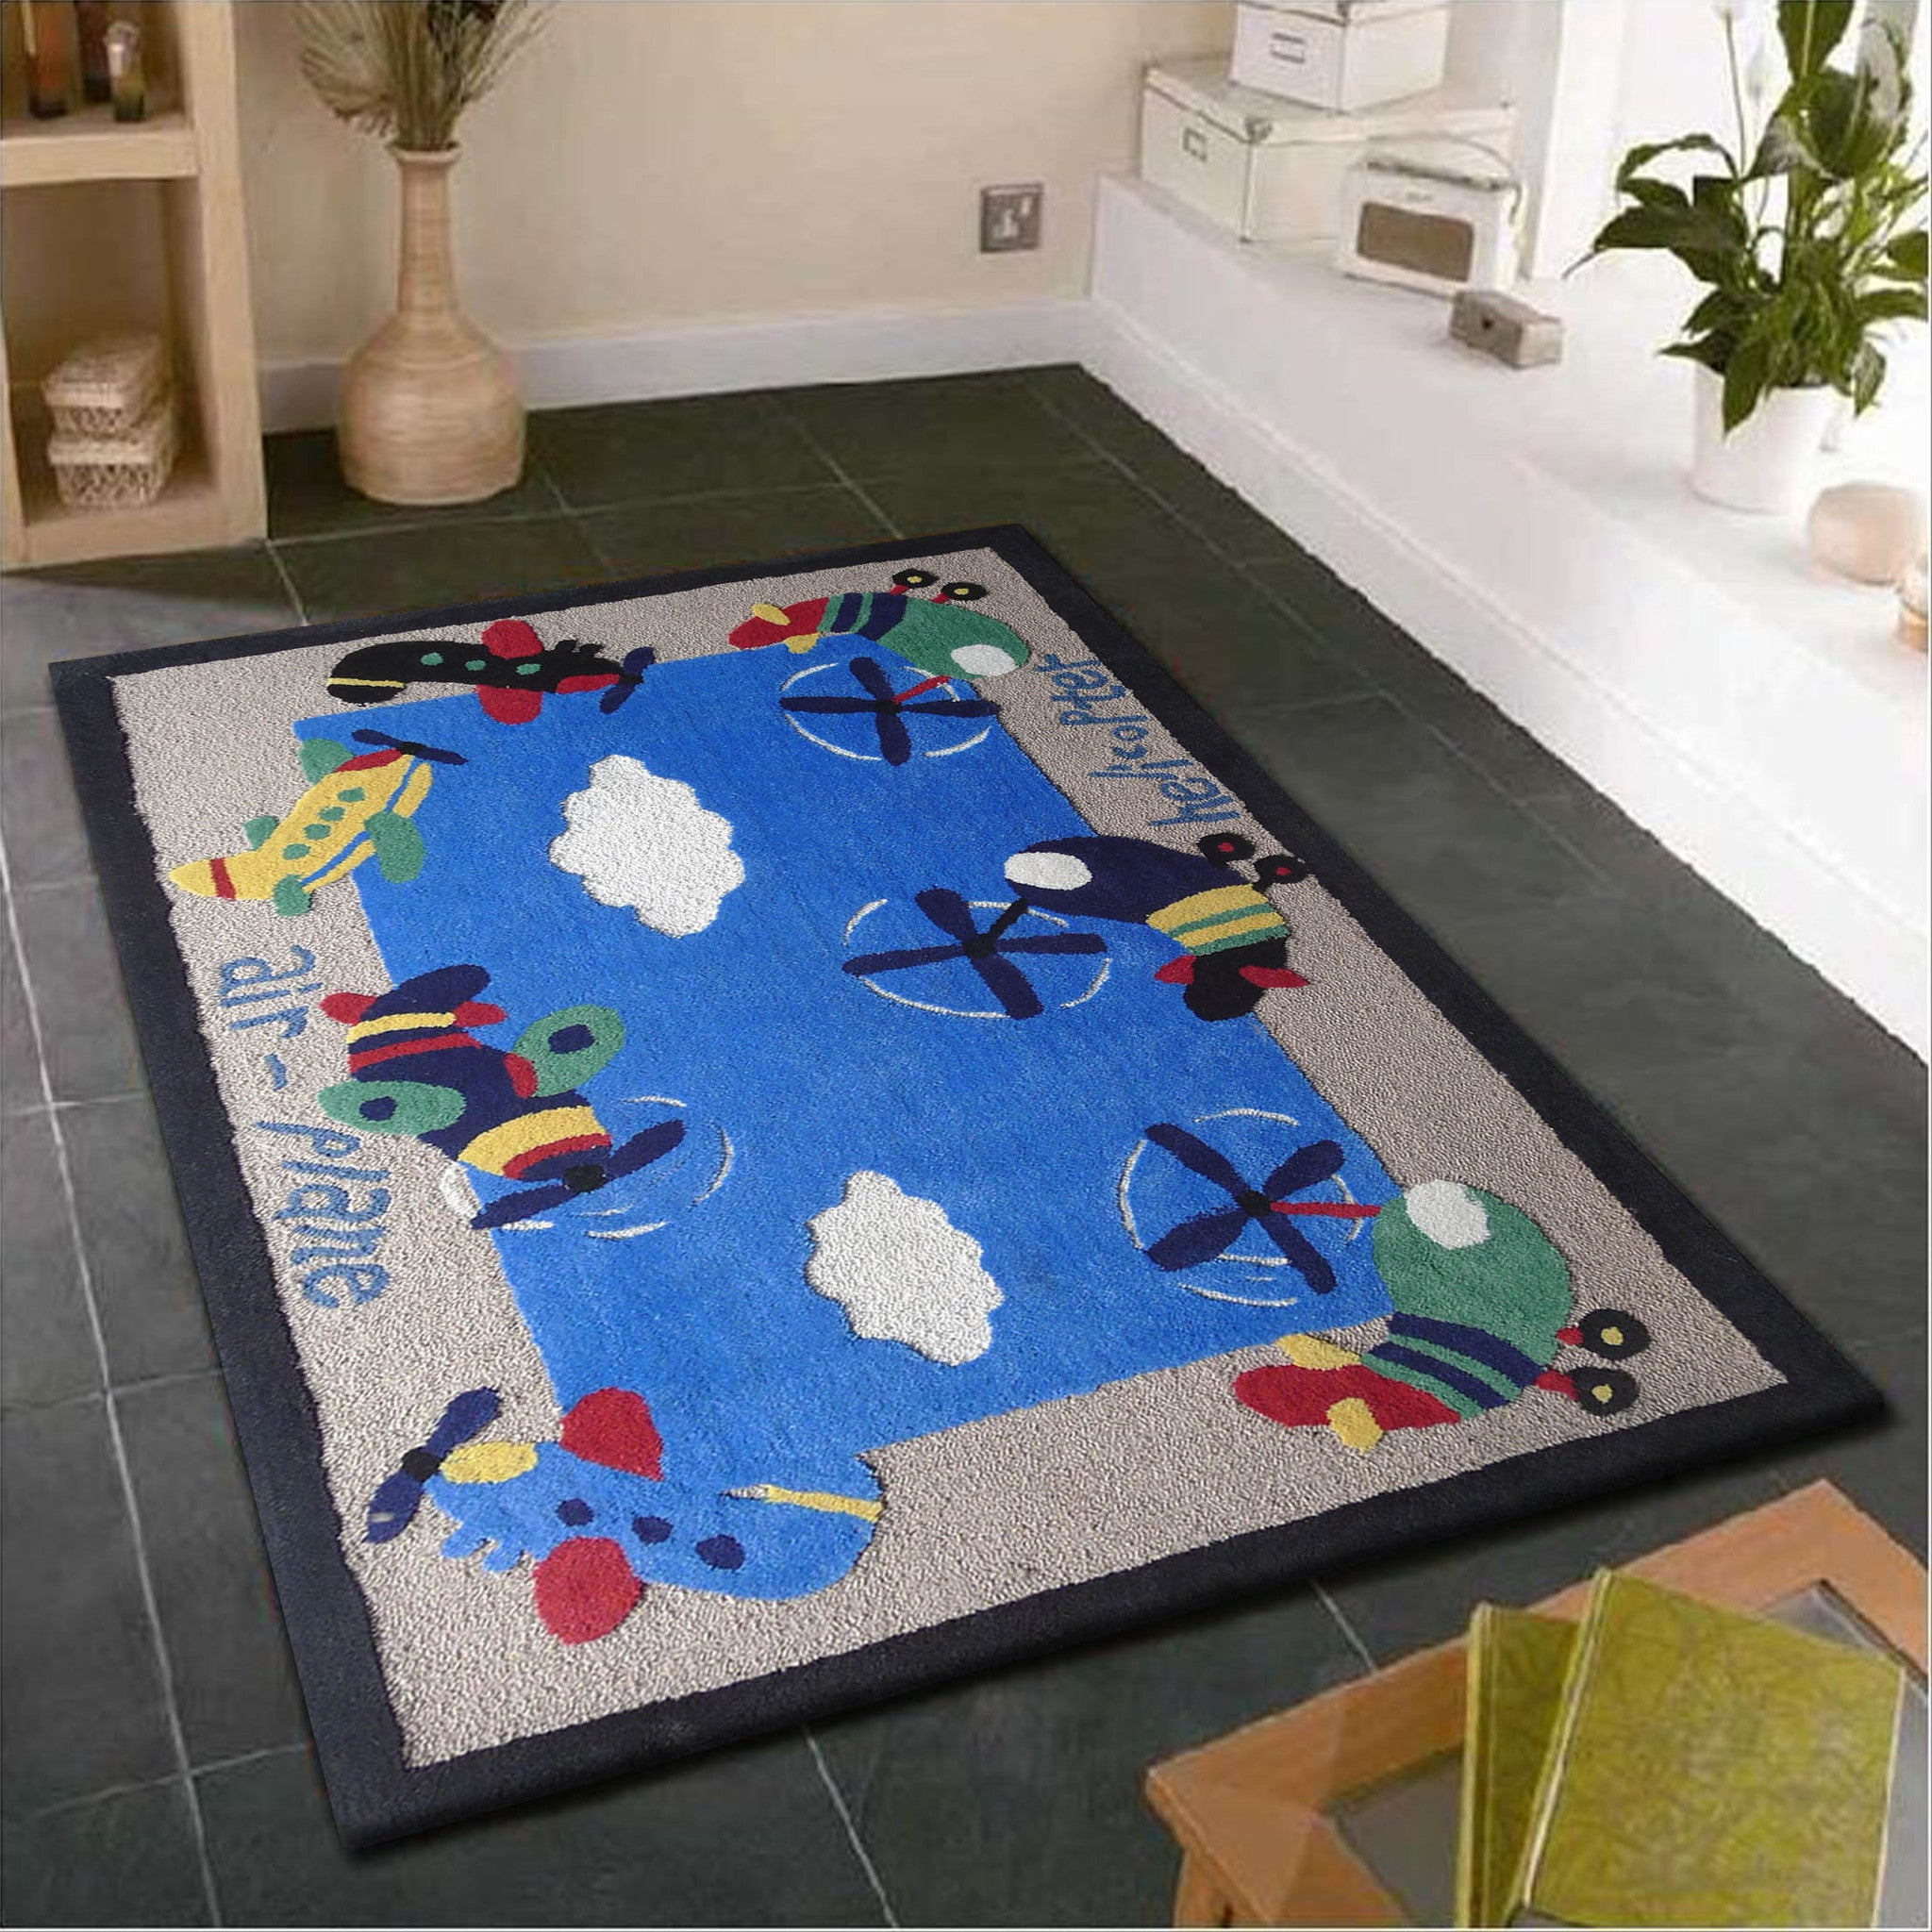 2-PC Set |4\' x 6\'ft. Beige Blue Kids Rug with Yoga Ball - Rug ...